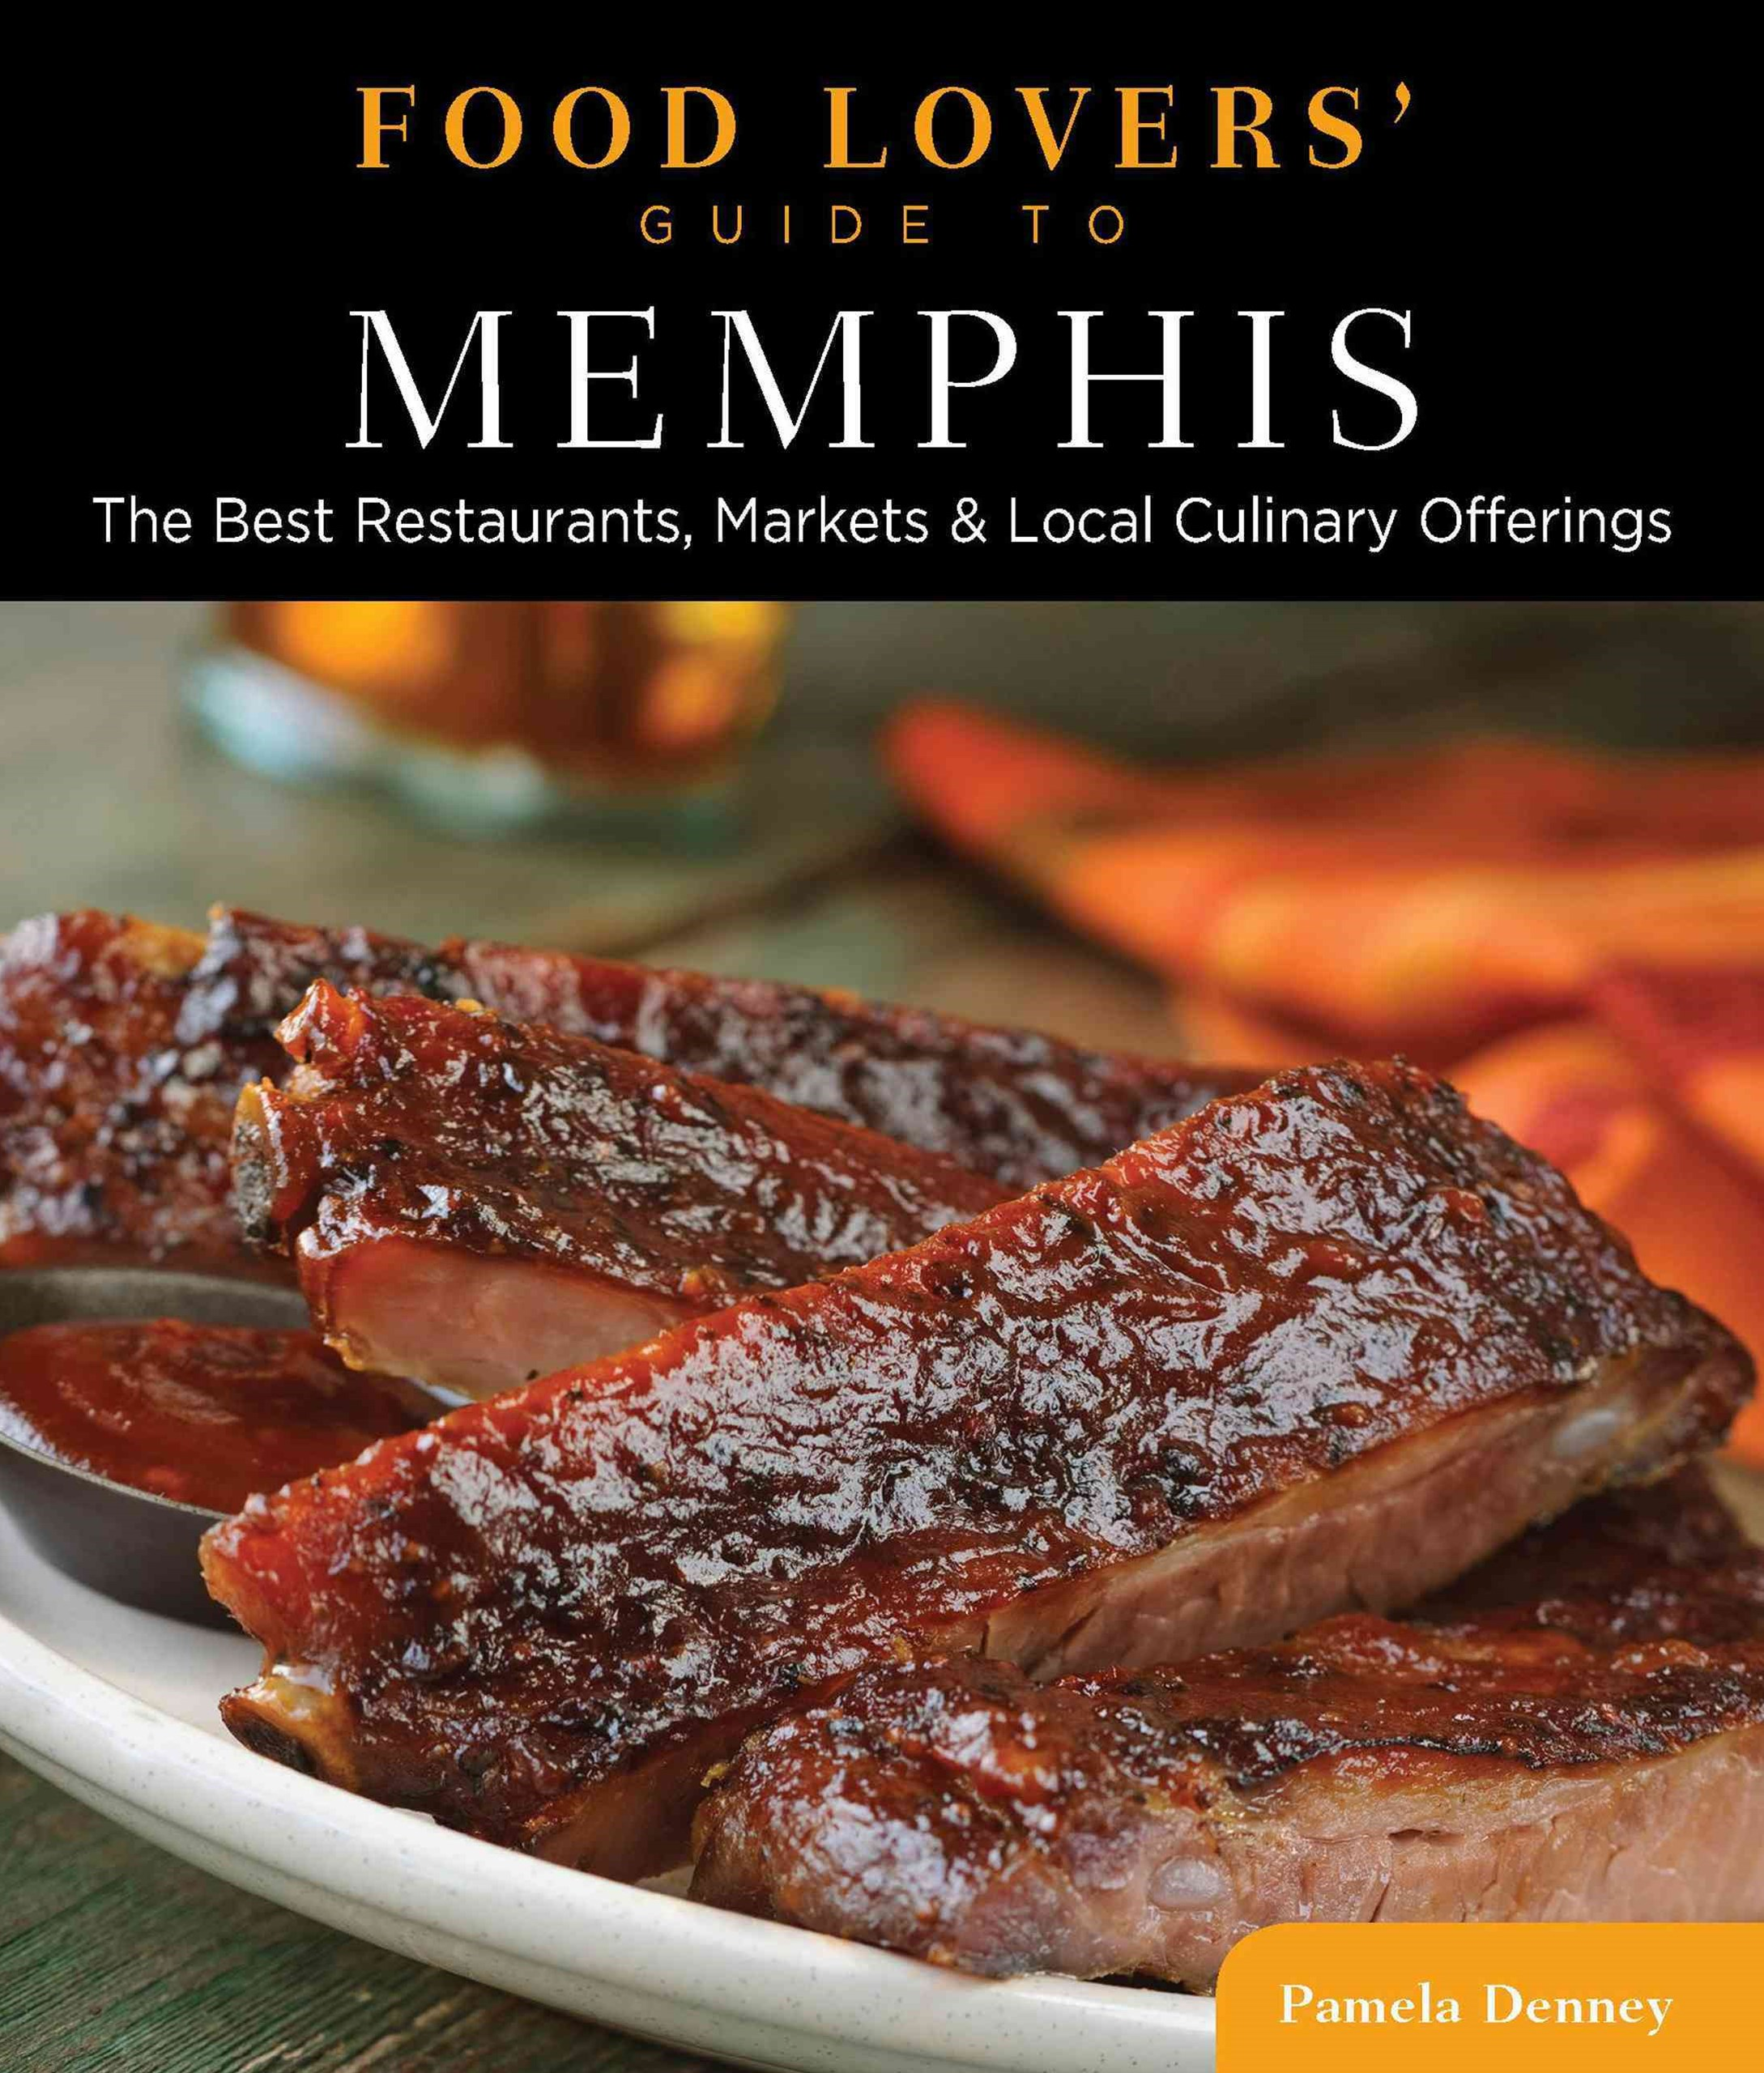 Food Lovers' Guide to Memphis